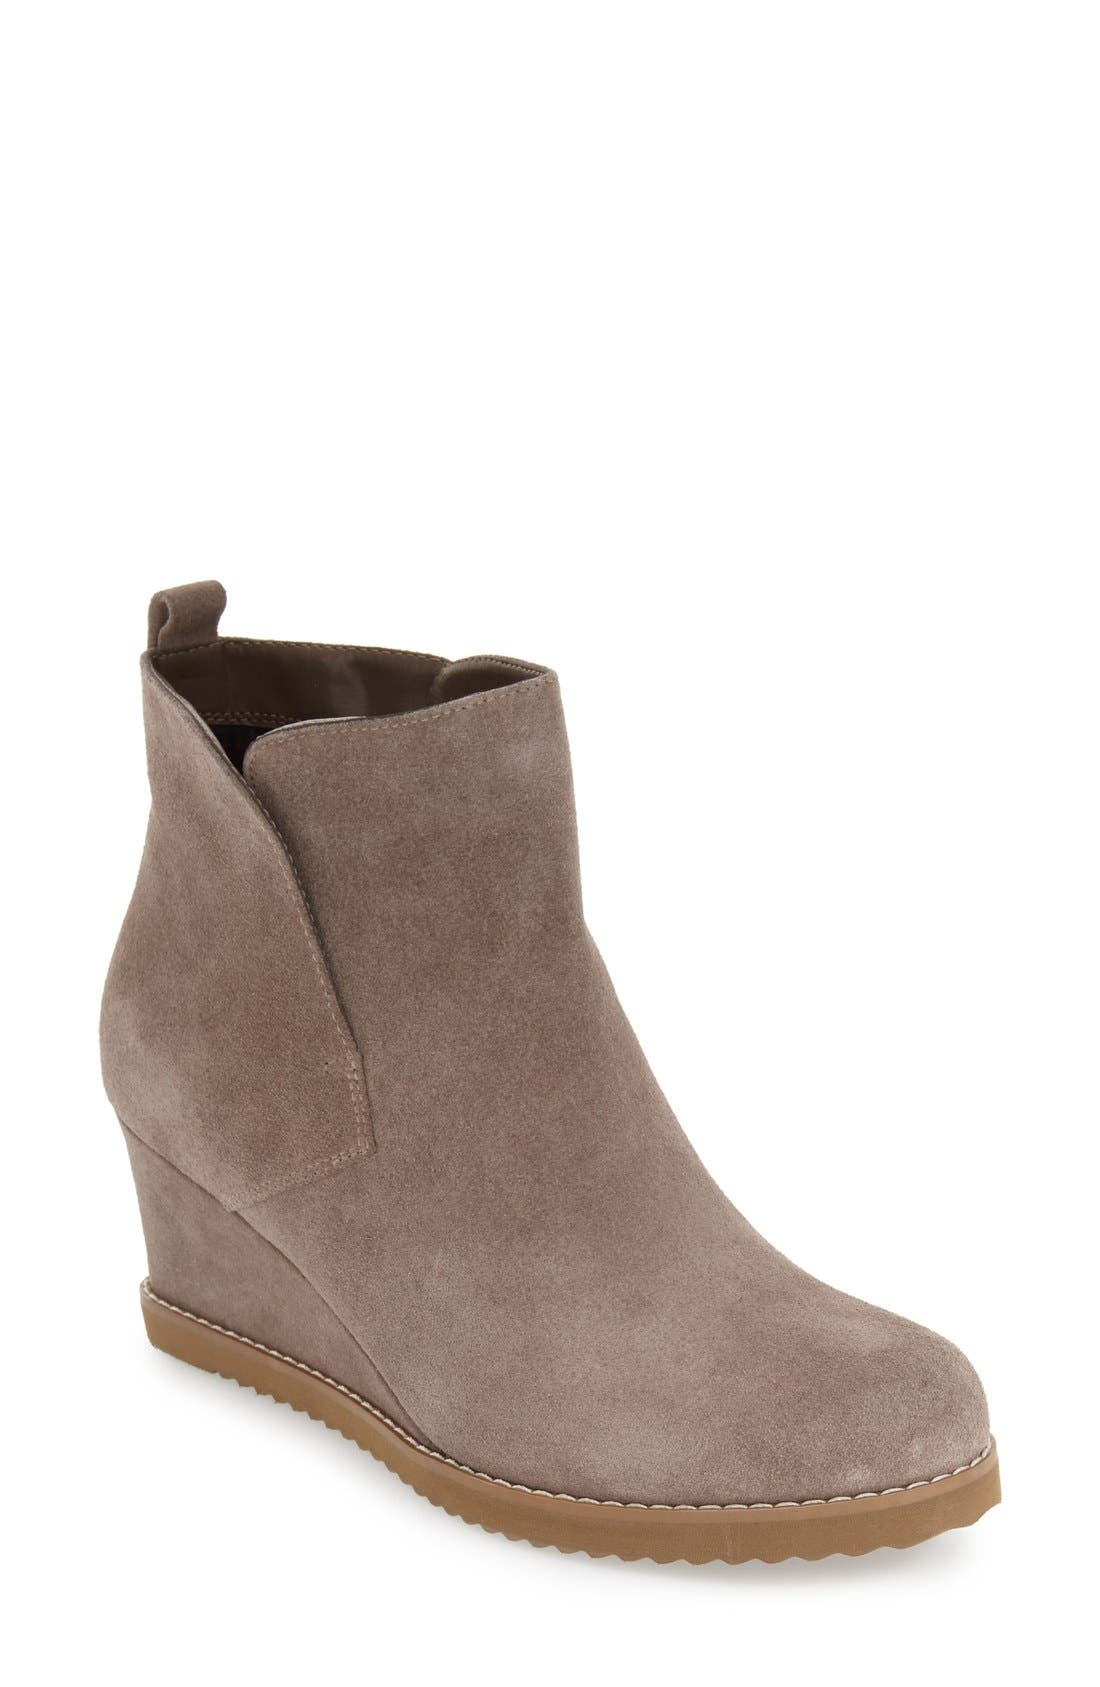 BLONDO Karla Waterproof Wedge Bootie